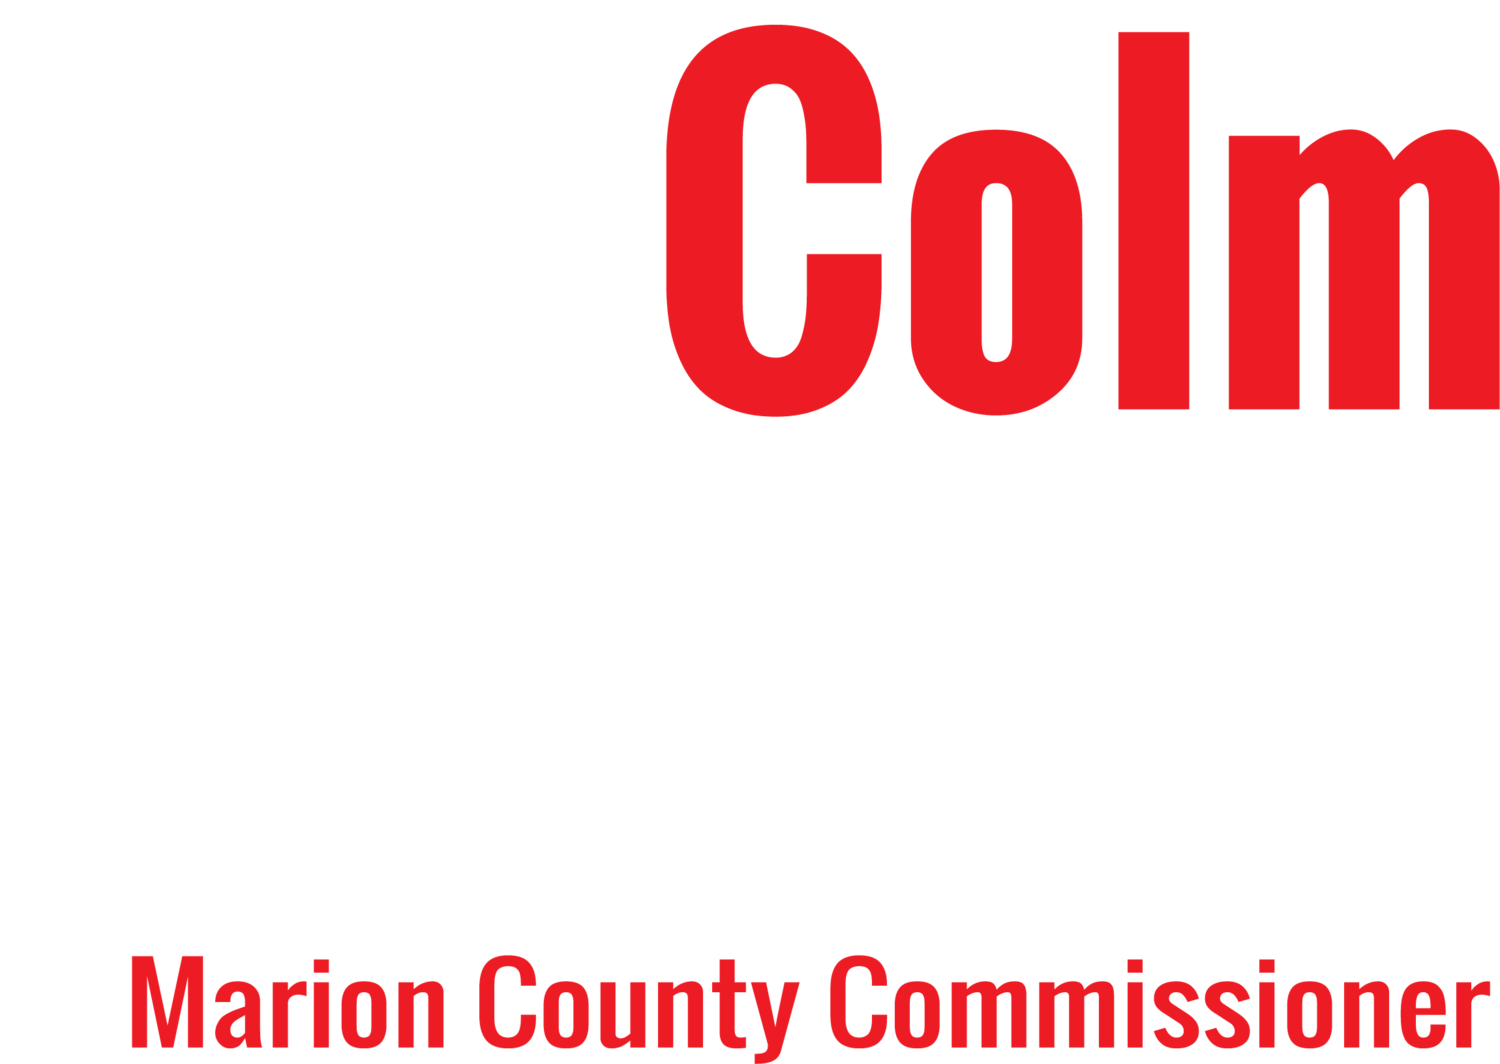 Colm Willis for Marion County Commissioner